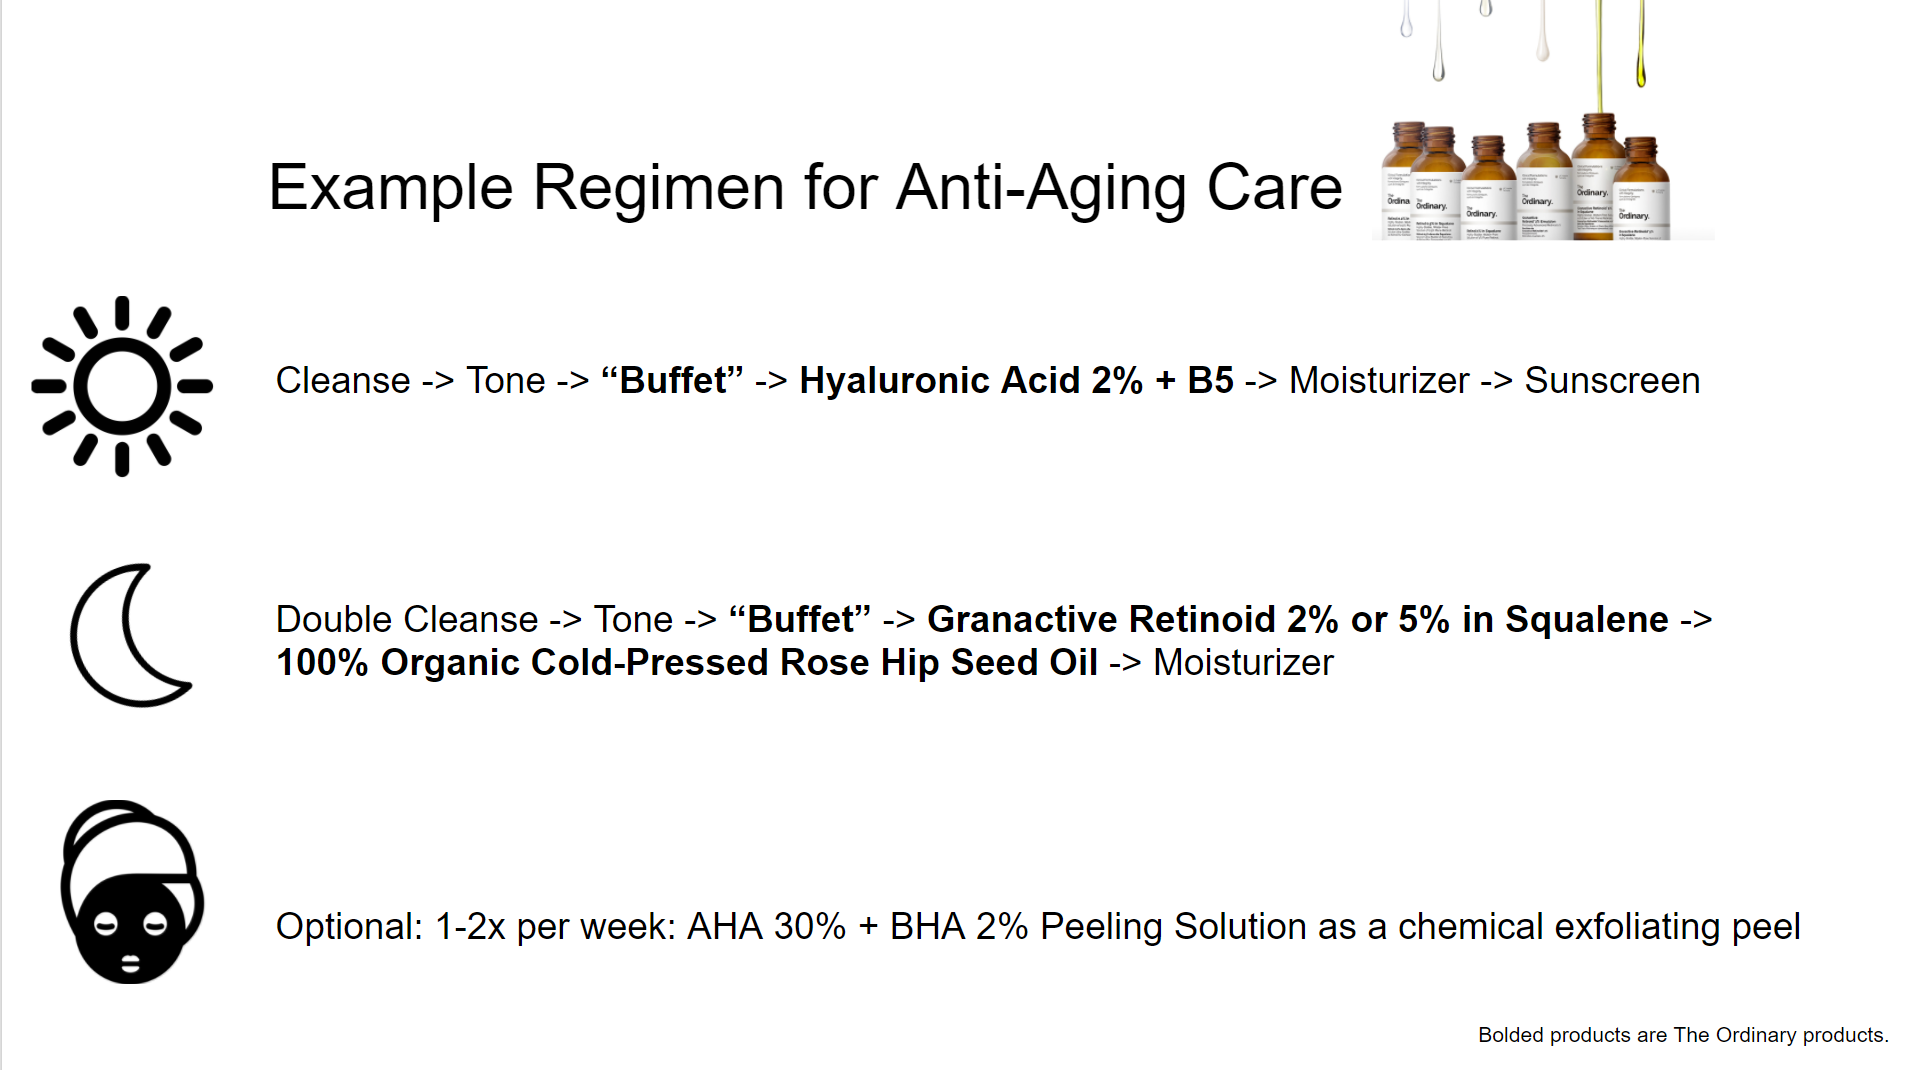 The Ordinary Example Regimen for Anti Aging